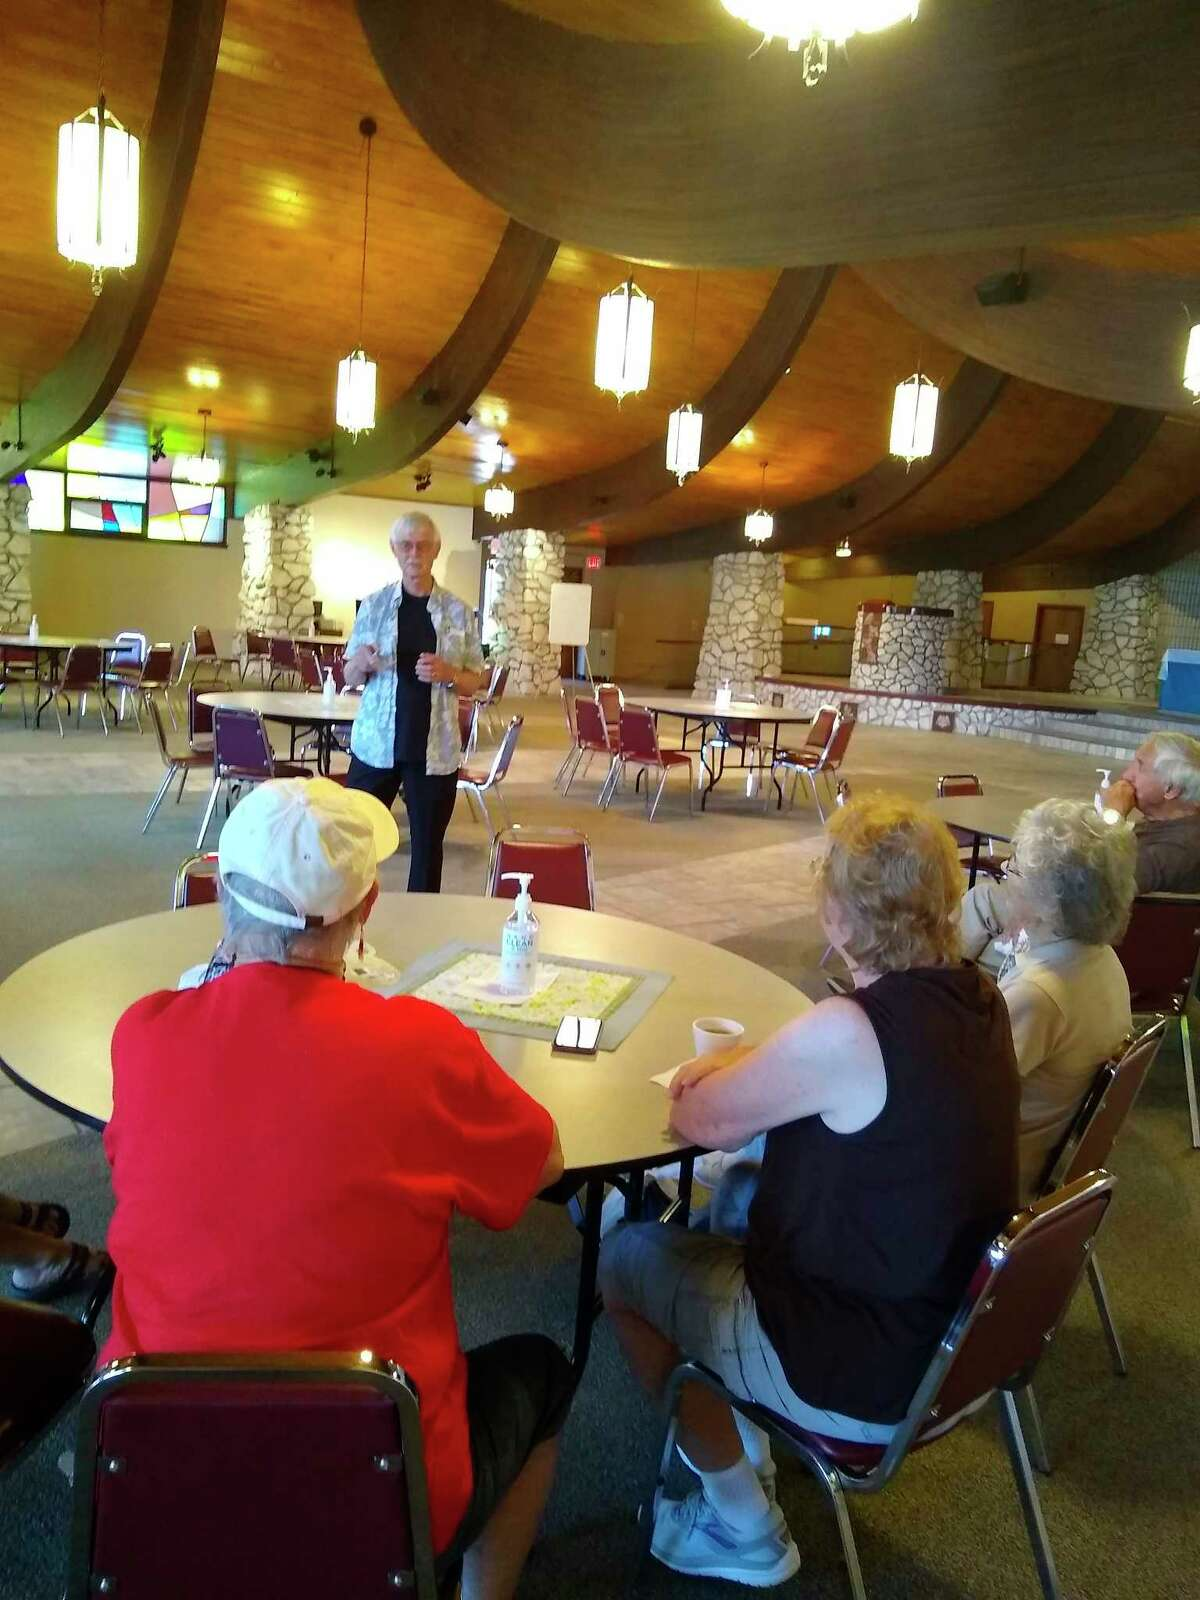 L.A. based comedian, Bob Ooten makes an appearance at the Wagoner Community Center, entertaining guests after their lunch Friday afternoon. (Courtesy Photo)